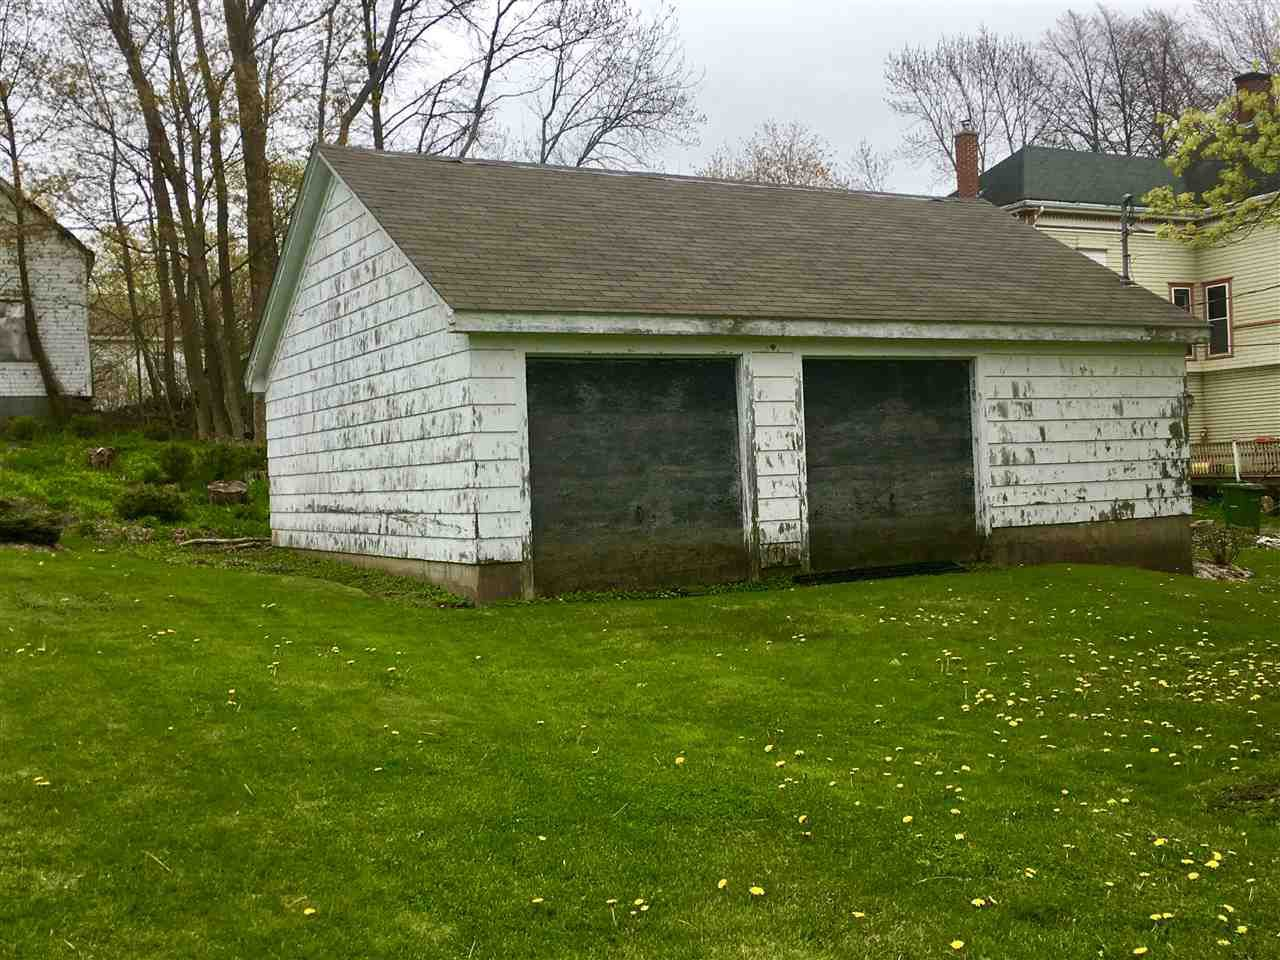 Main Photo: 16 Patterson Street in Pictou: 107-Trenton,Westville,Pictou Vacant Land for sale (Northern Region)  : MLS®# 201911977